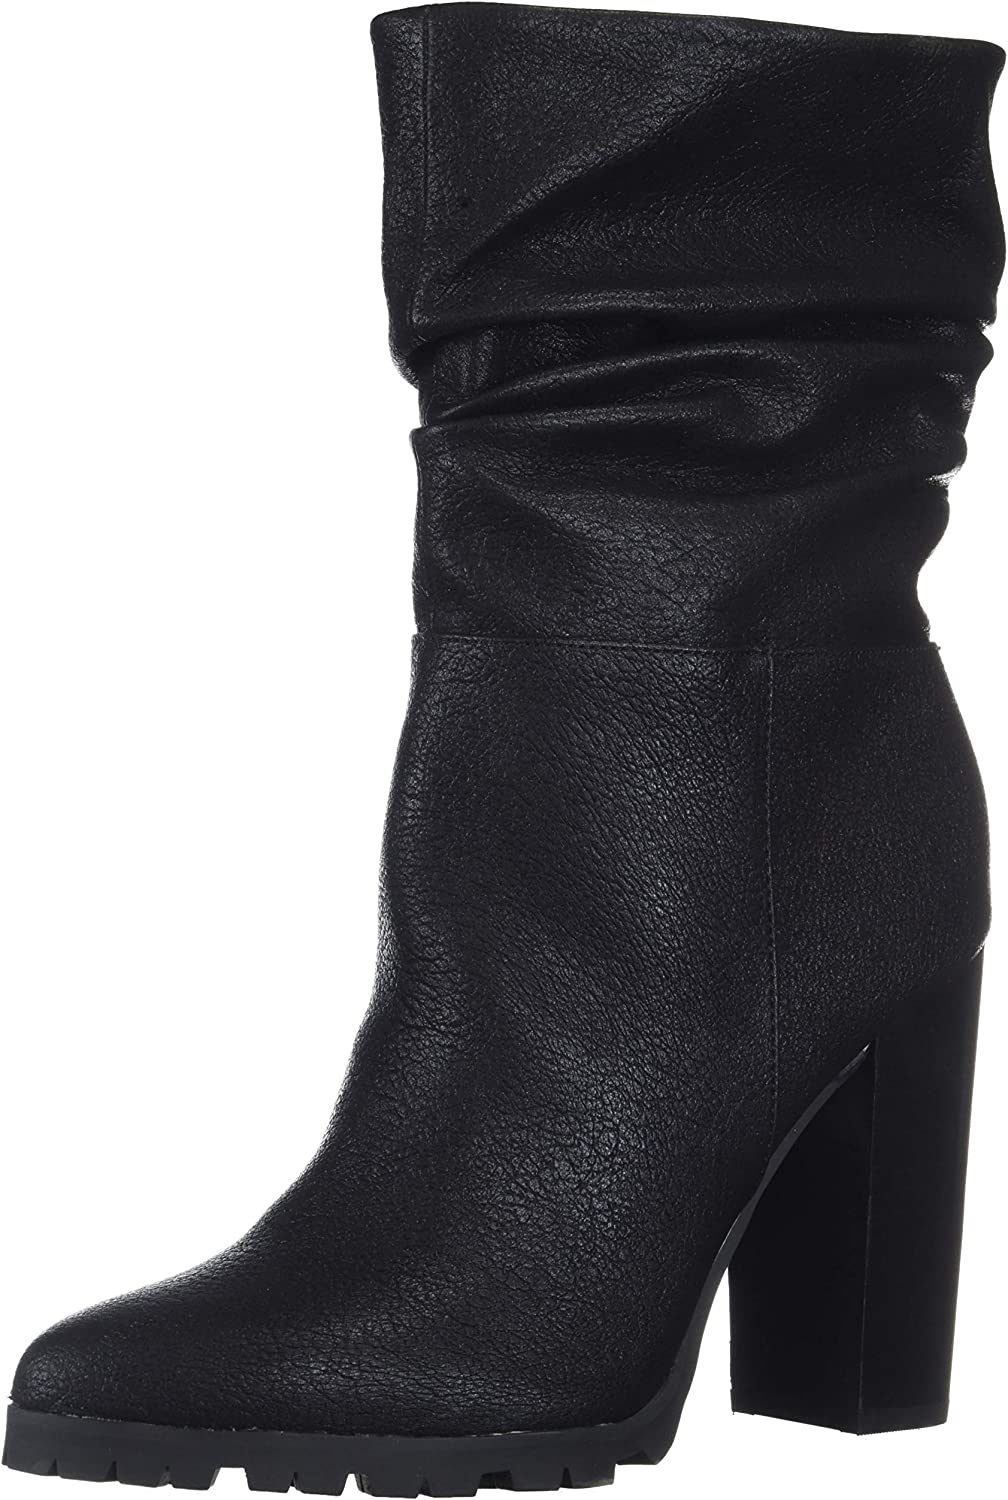 Katy Perry Womens Rania Closed Toe Mid-Calf Fashion Boots